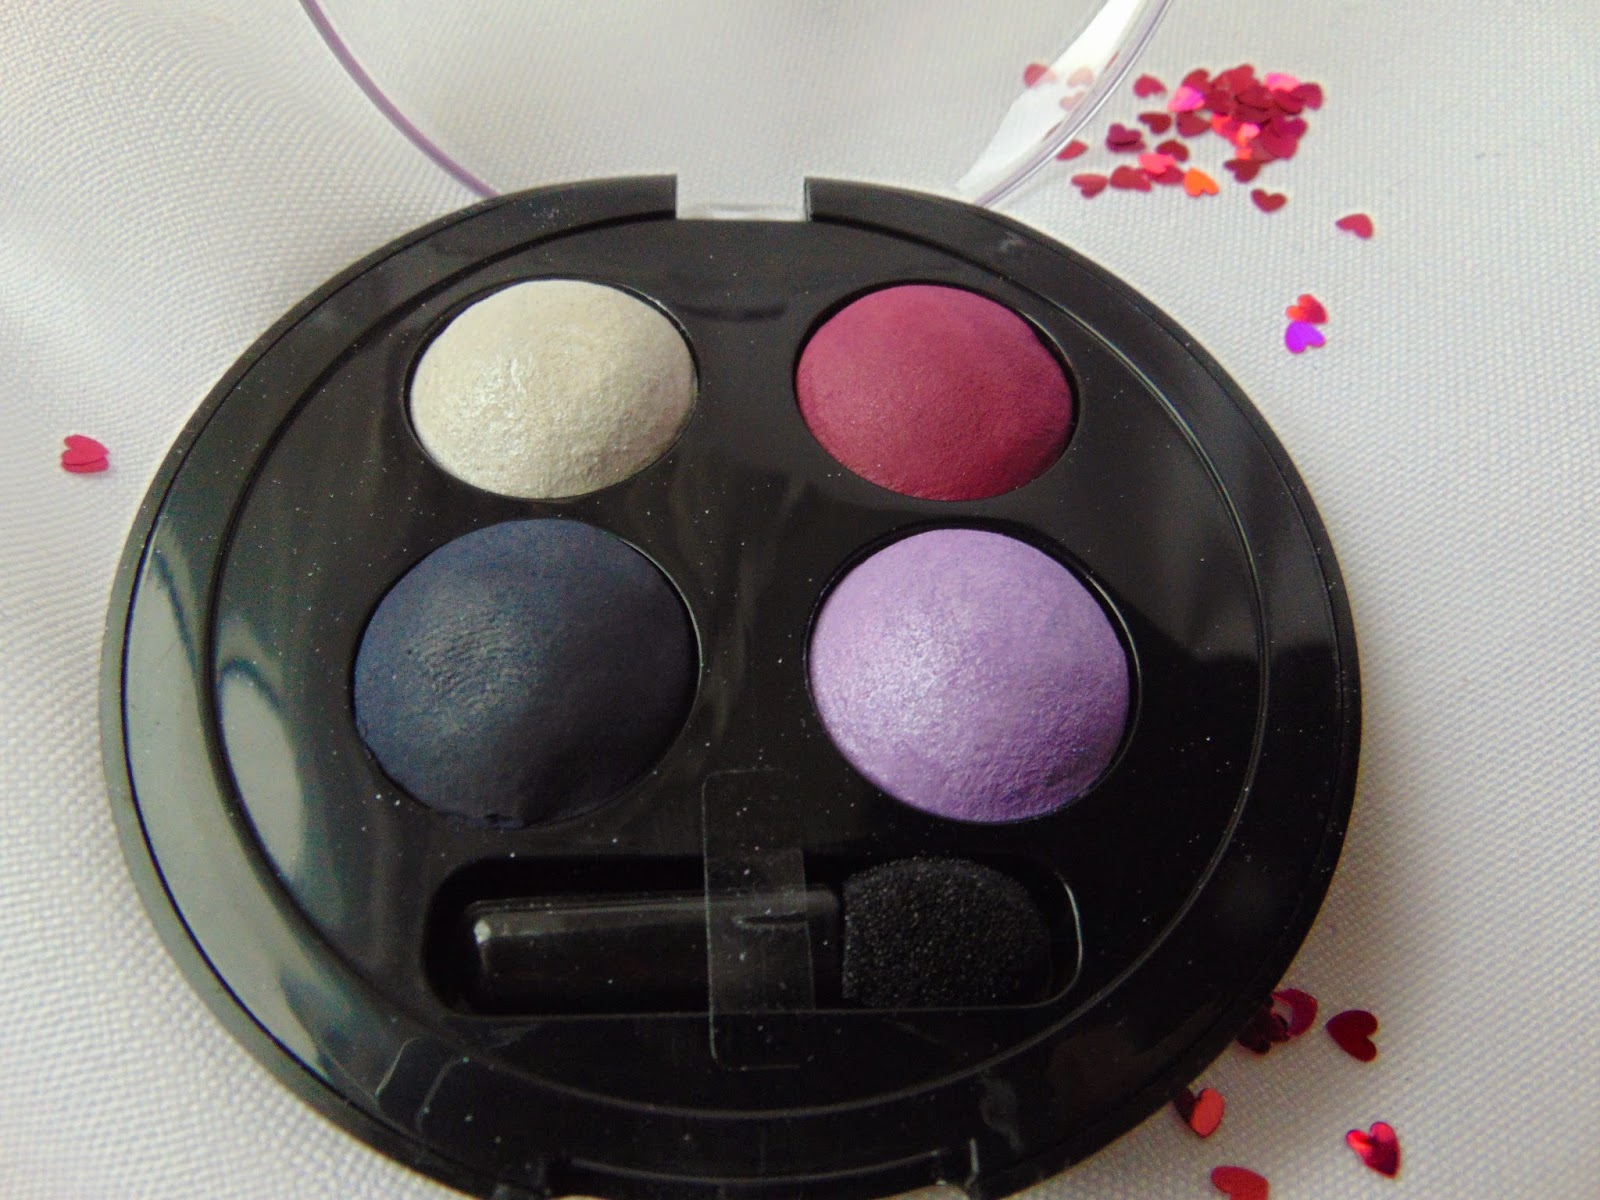 p2 Limited Edition: Just dream like - soft illusion quattro eye shadow - Story Telling - www.annitschkasblog.de